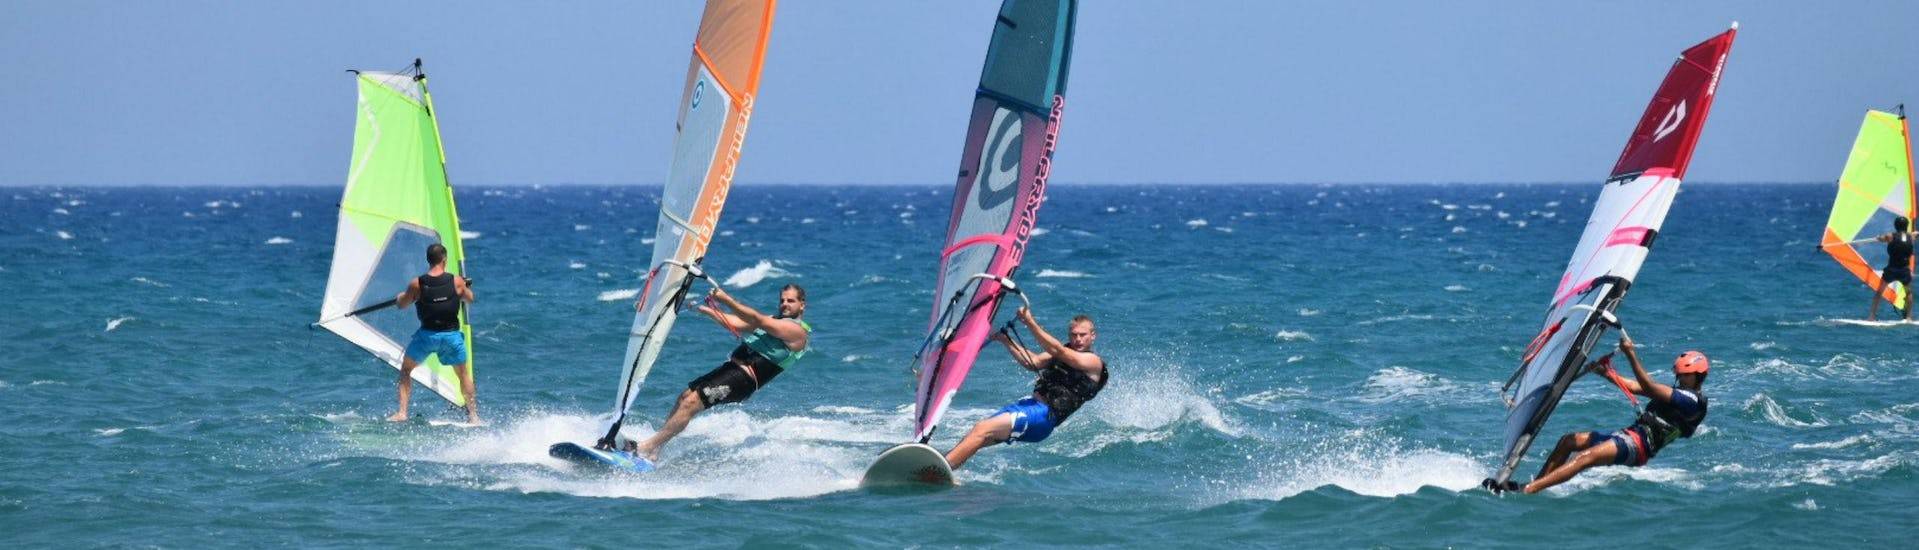 Private Windsurfing Lessons for Adults - Advanced